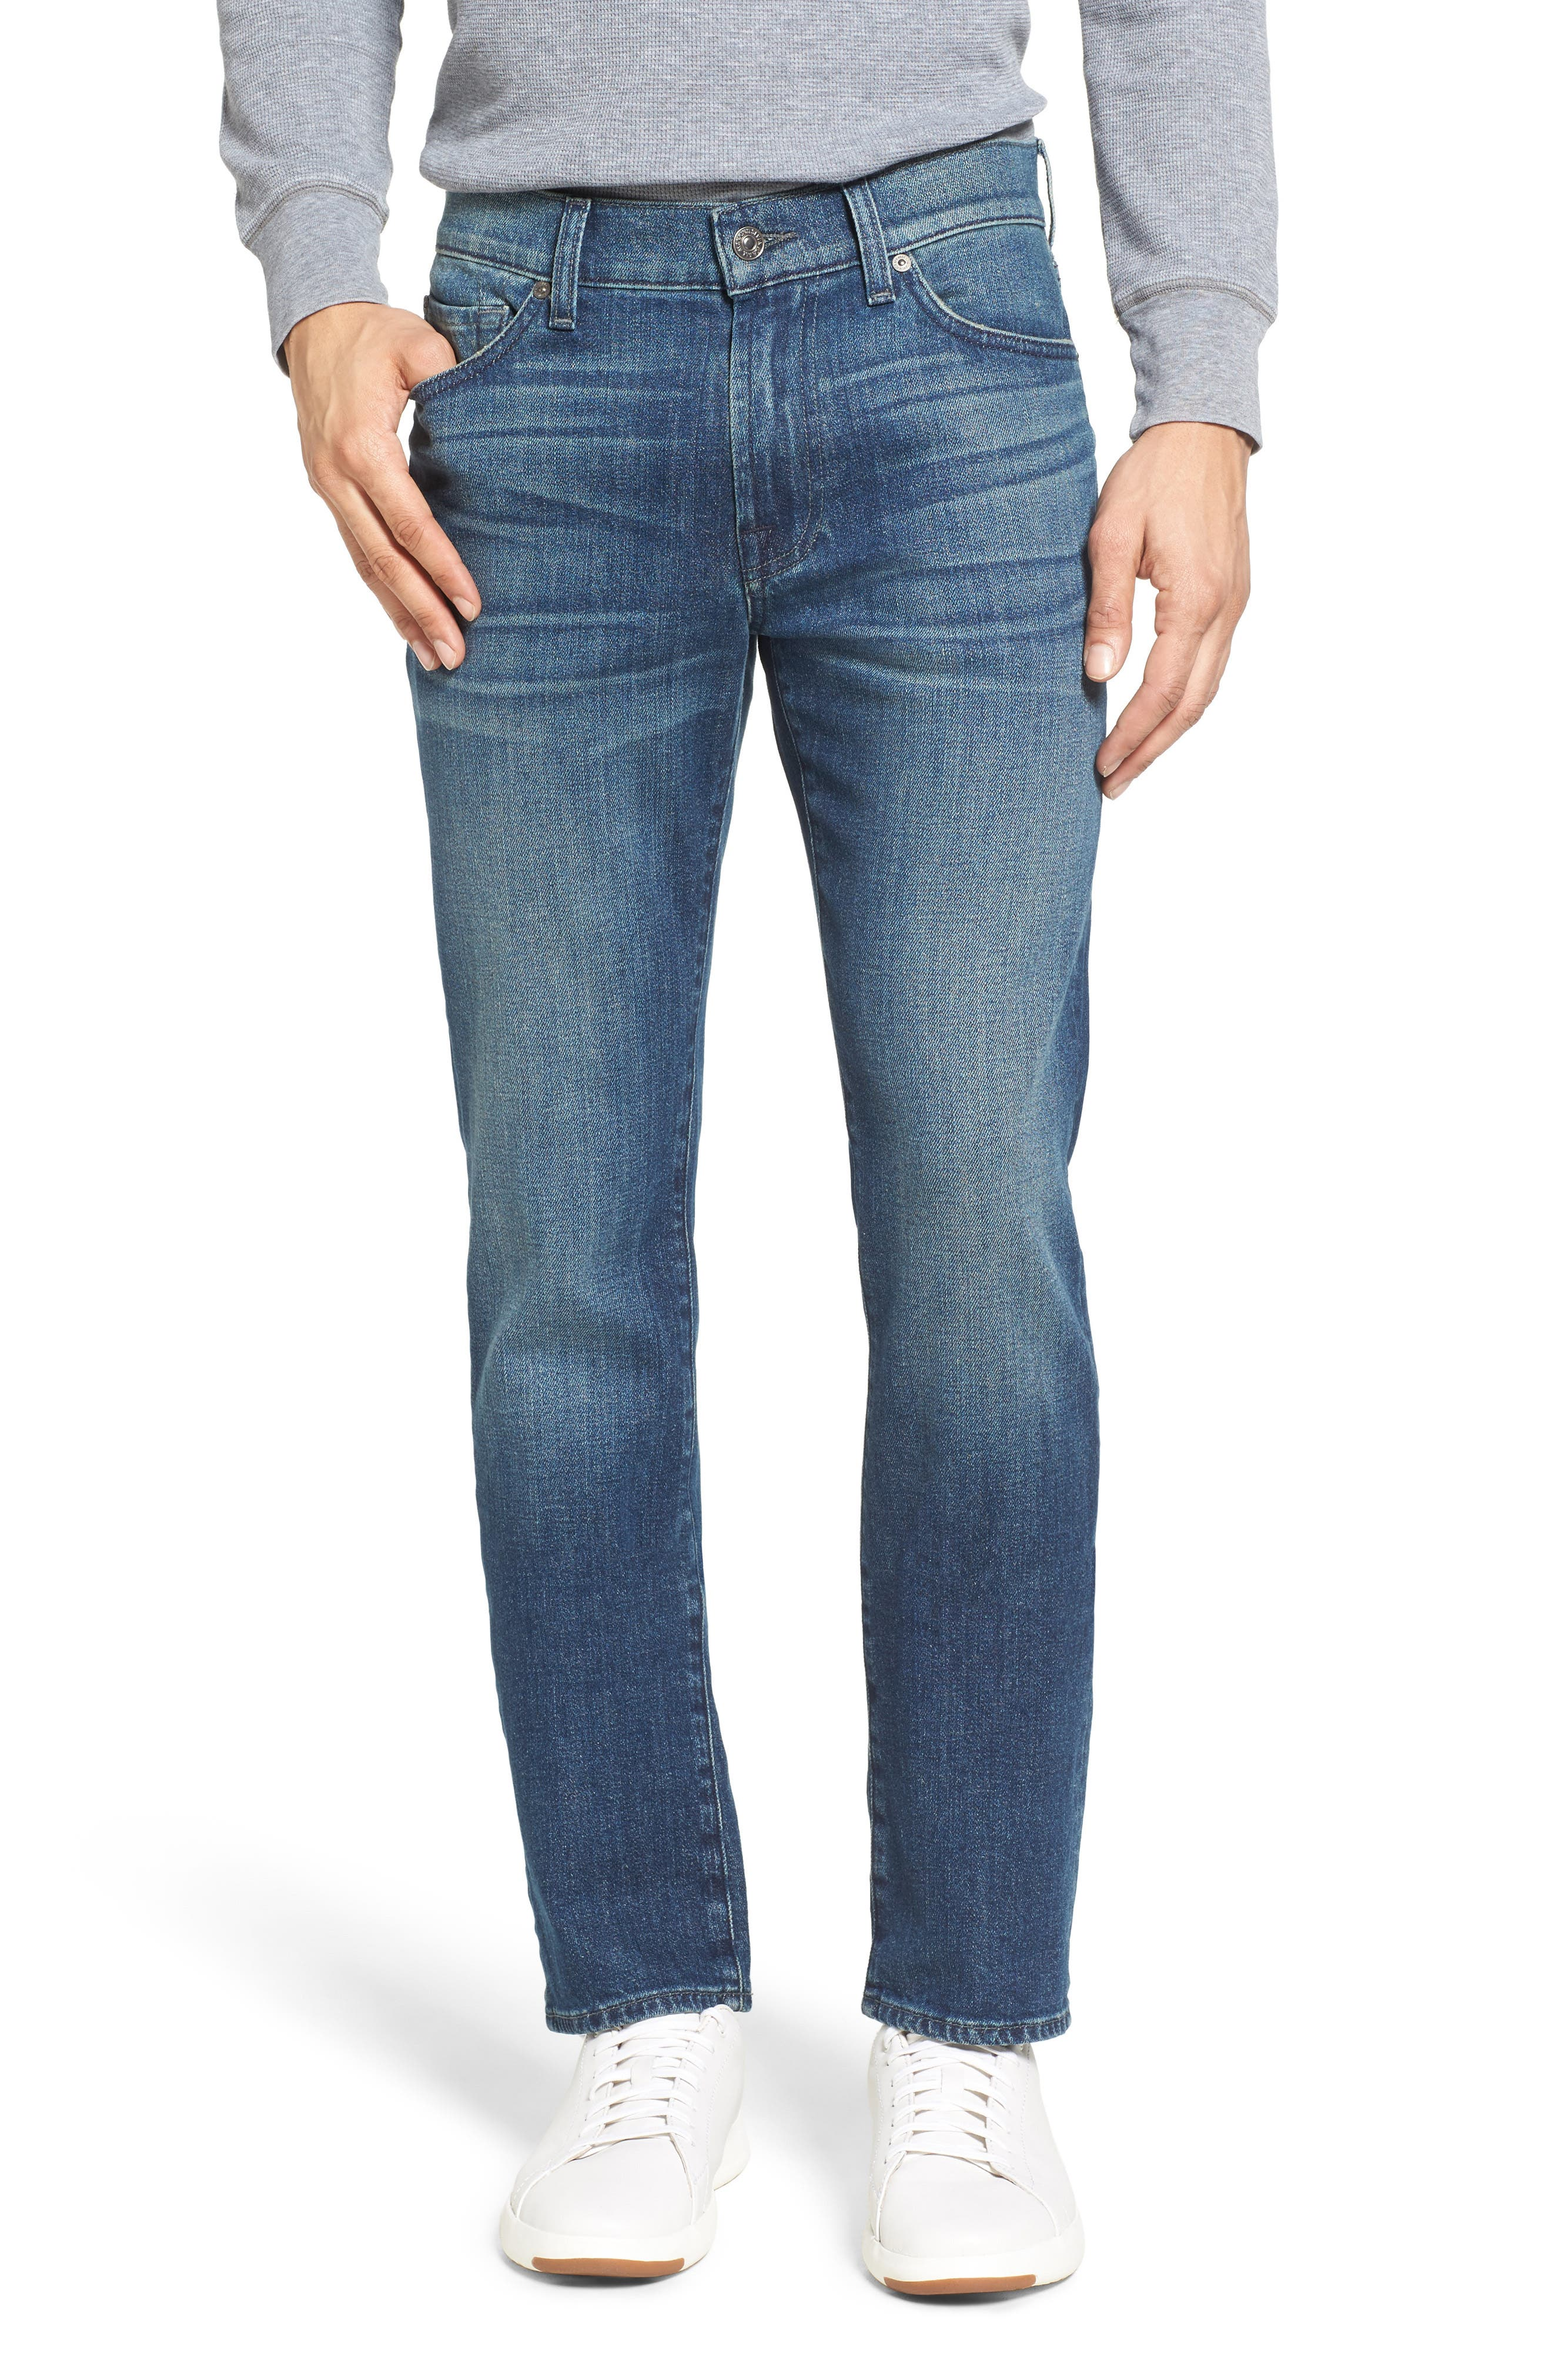 7 For All Mankind Slimmy Slim Fit Jeans,                         Main,                         color, 406